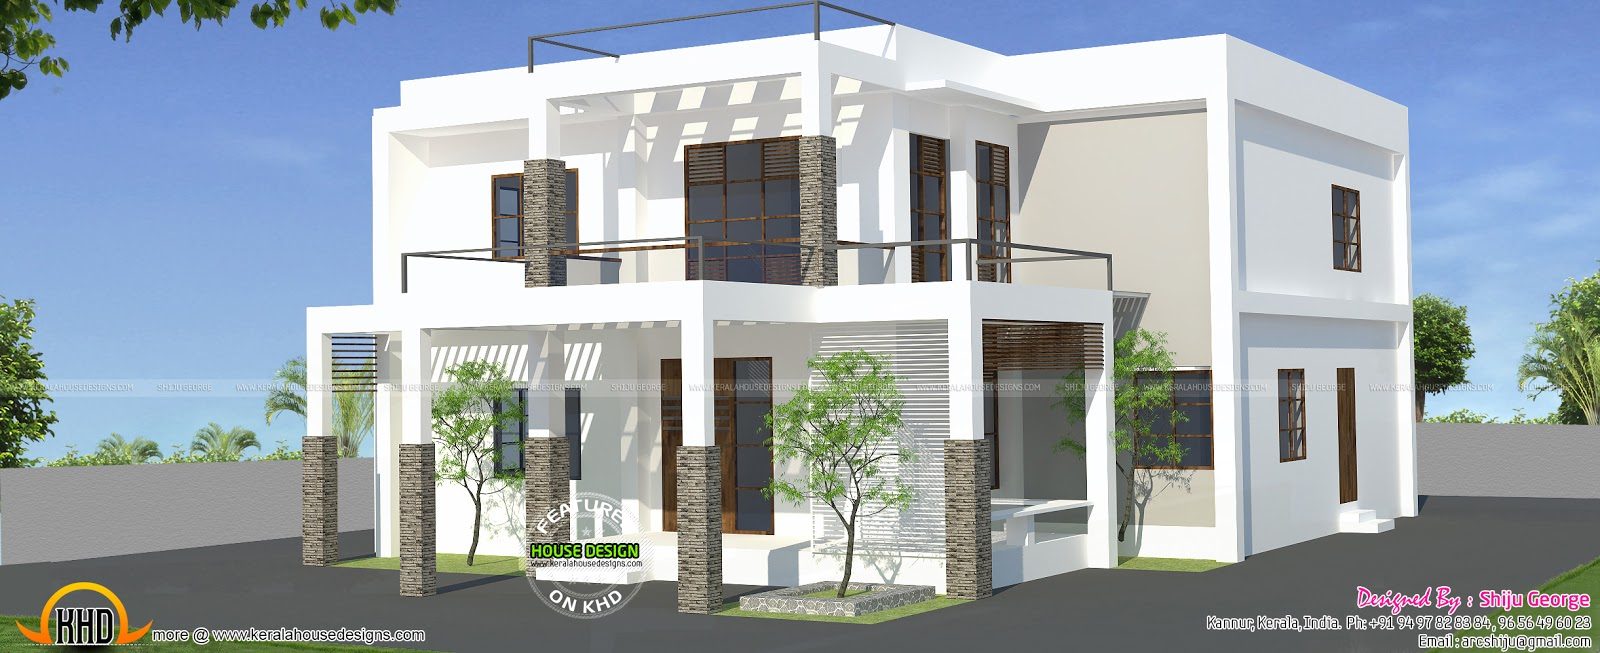 204 Sq M Flat Roof Style House Kerala Home Design And